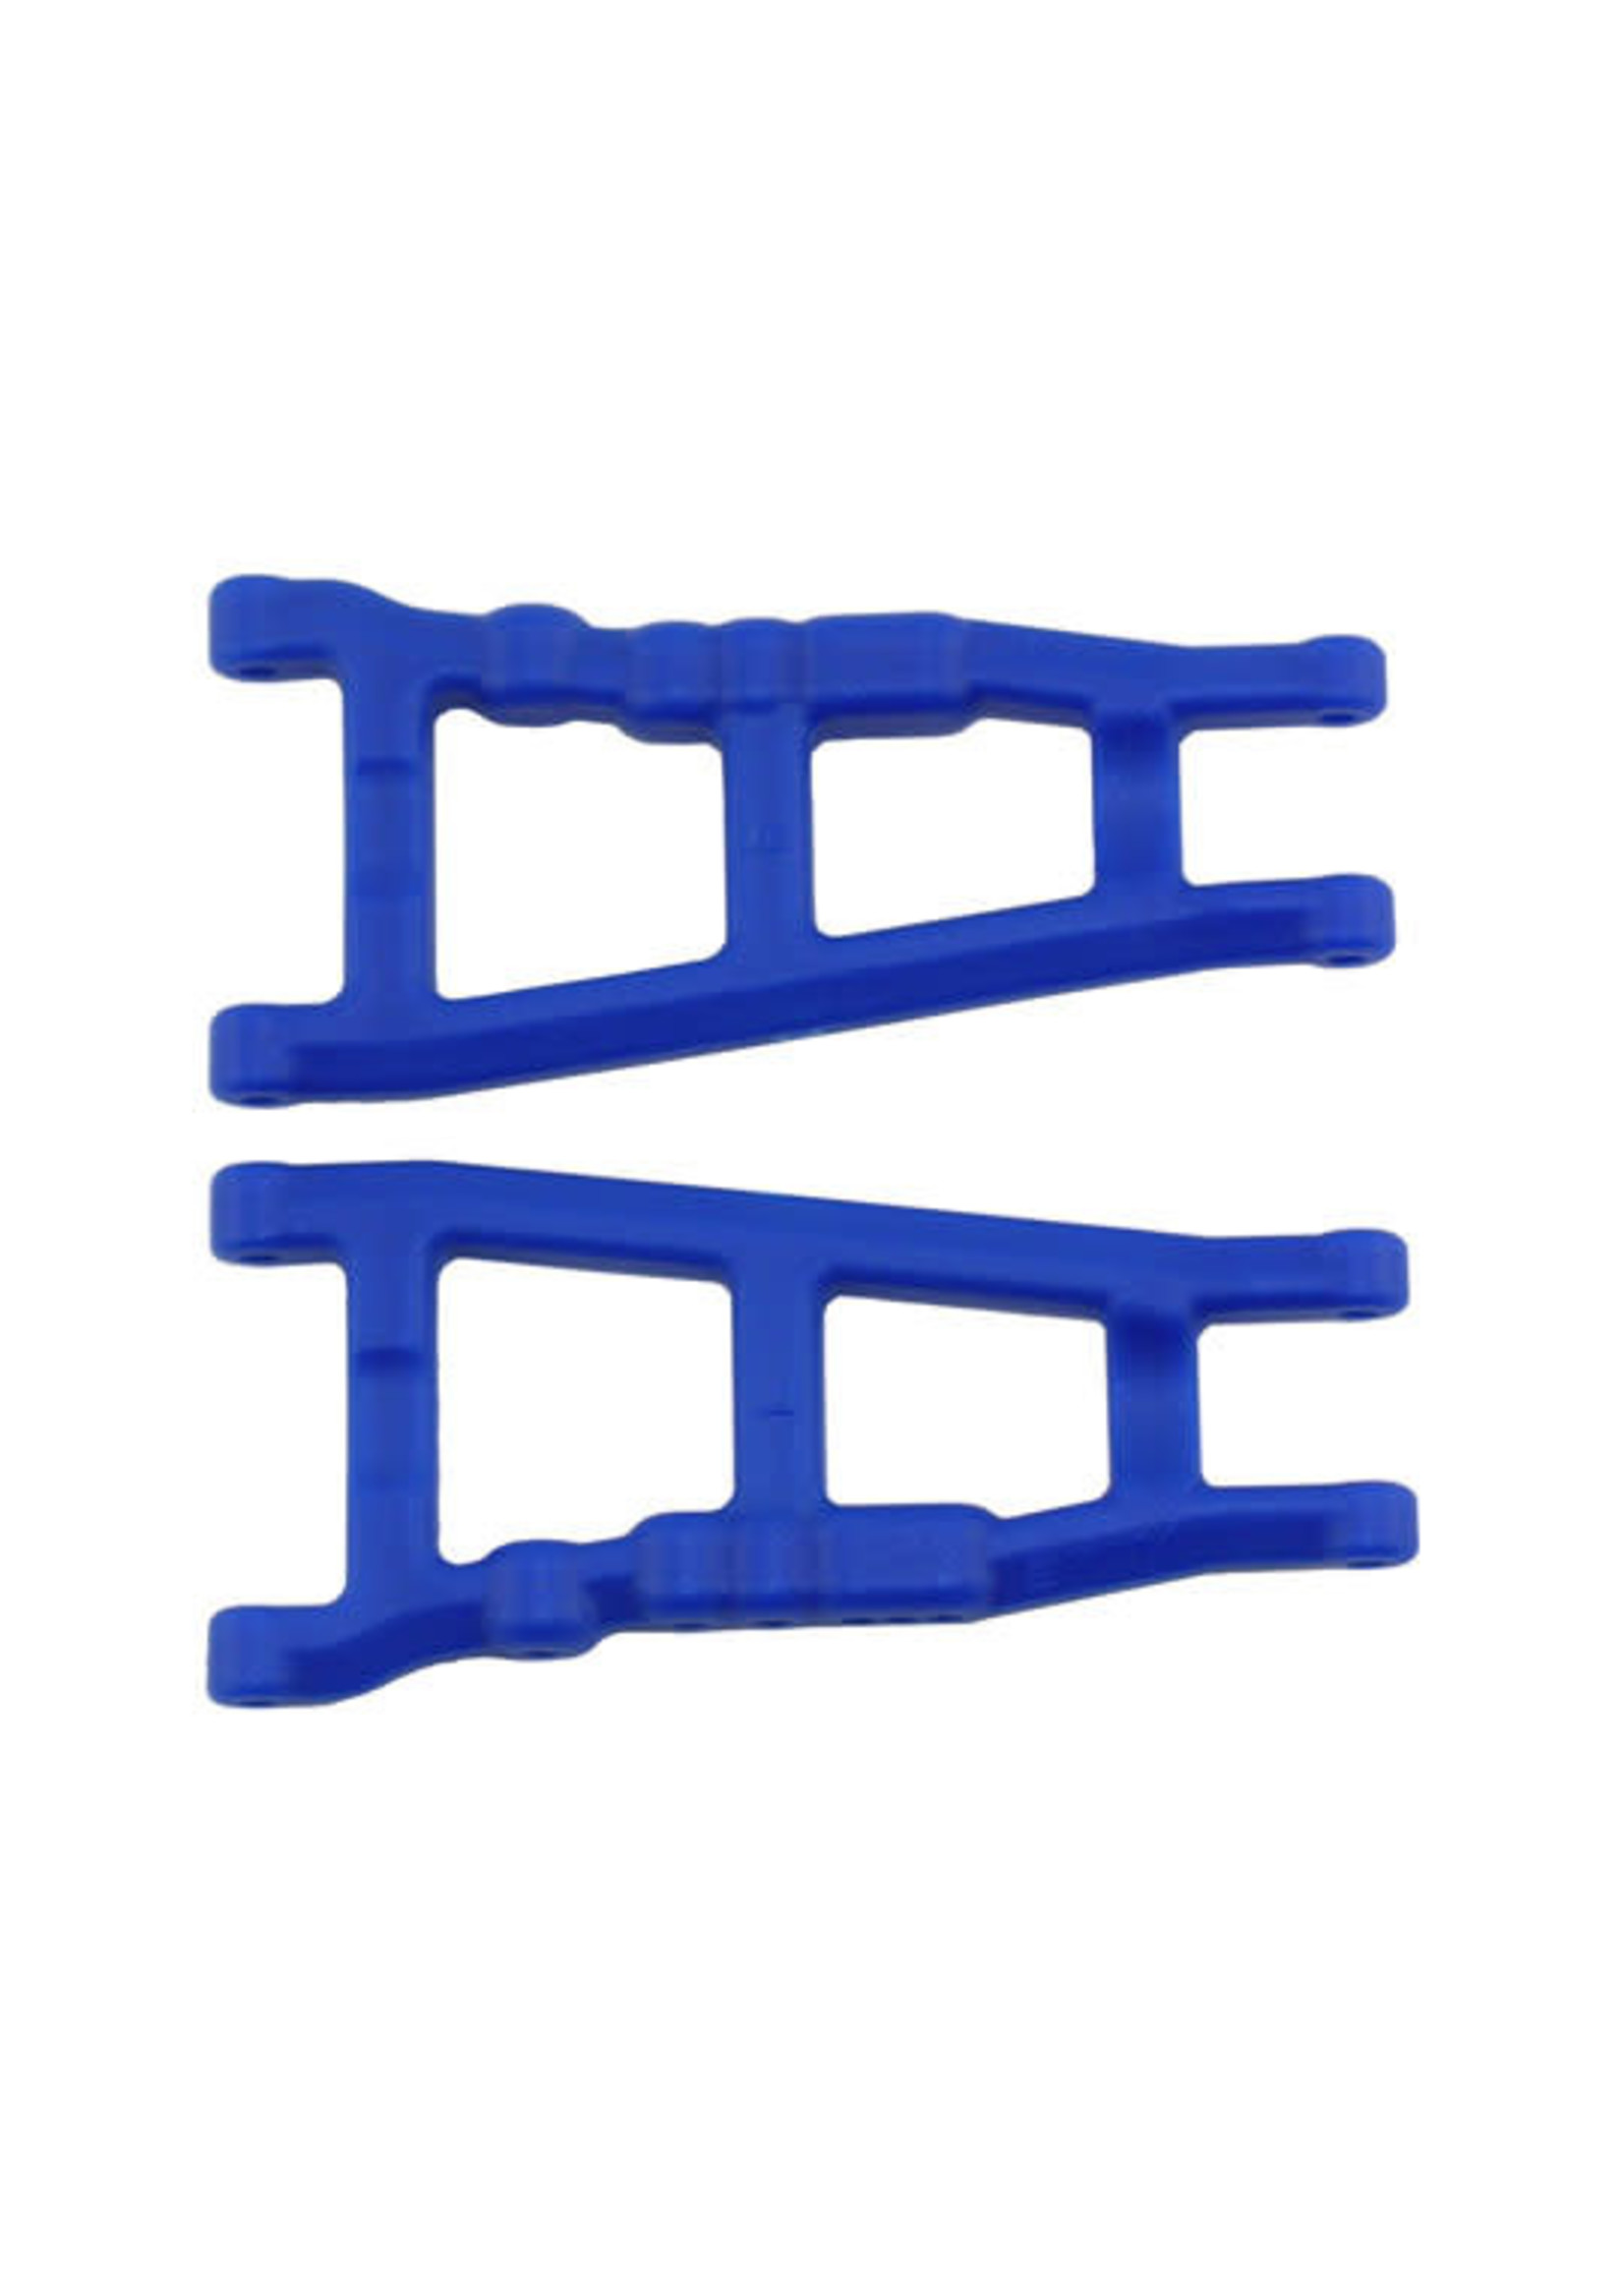 RPM RPM80705 RPM Front or Rear A-arms, Blue: Slash 4x4,ST 4x4,Rally